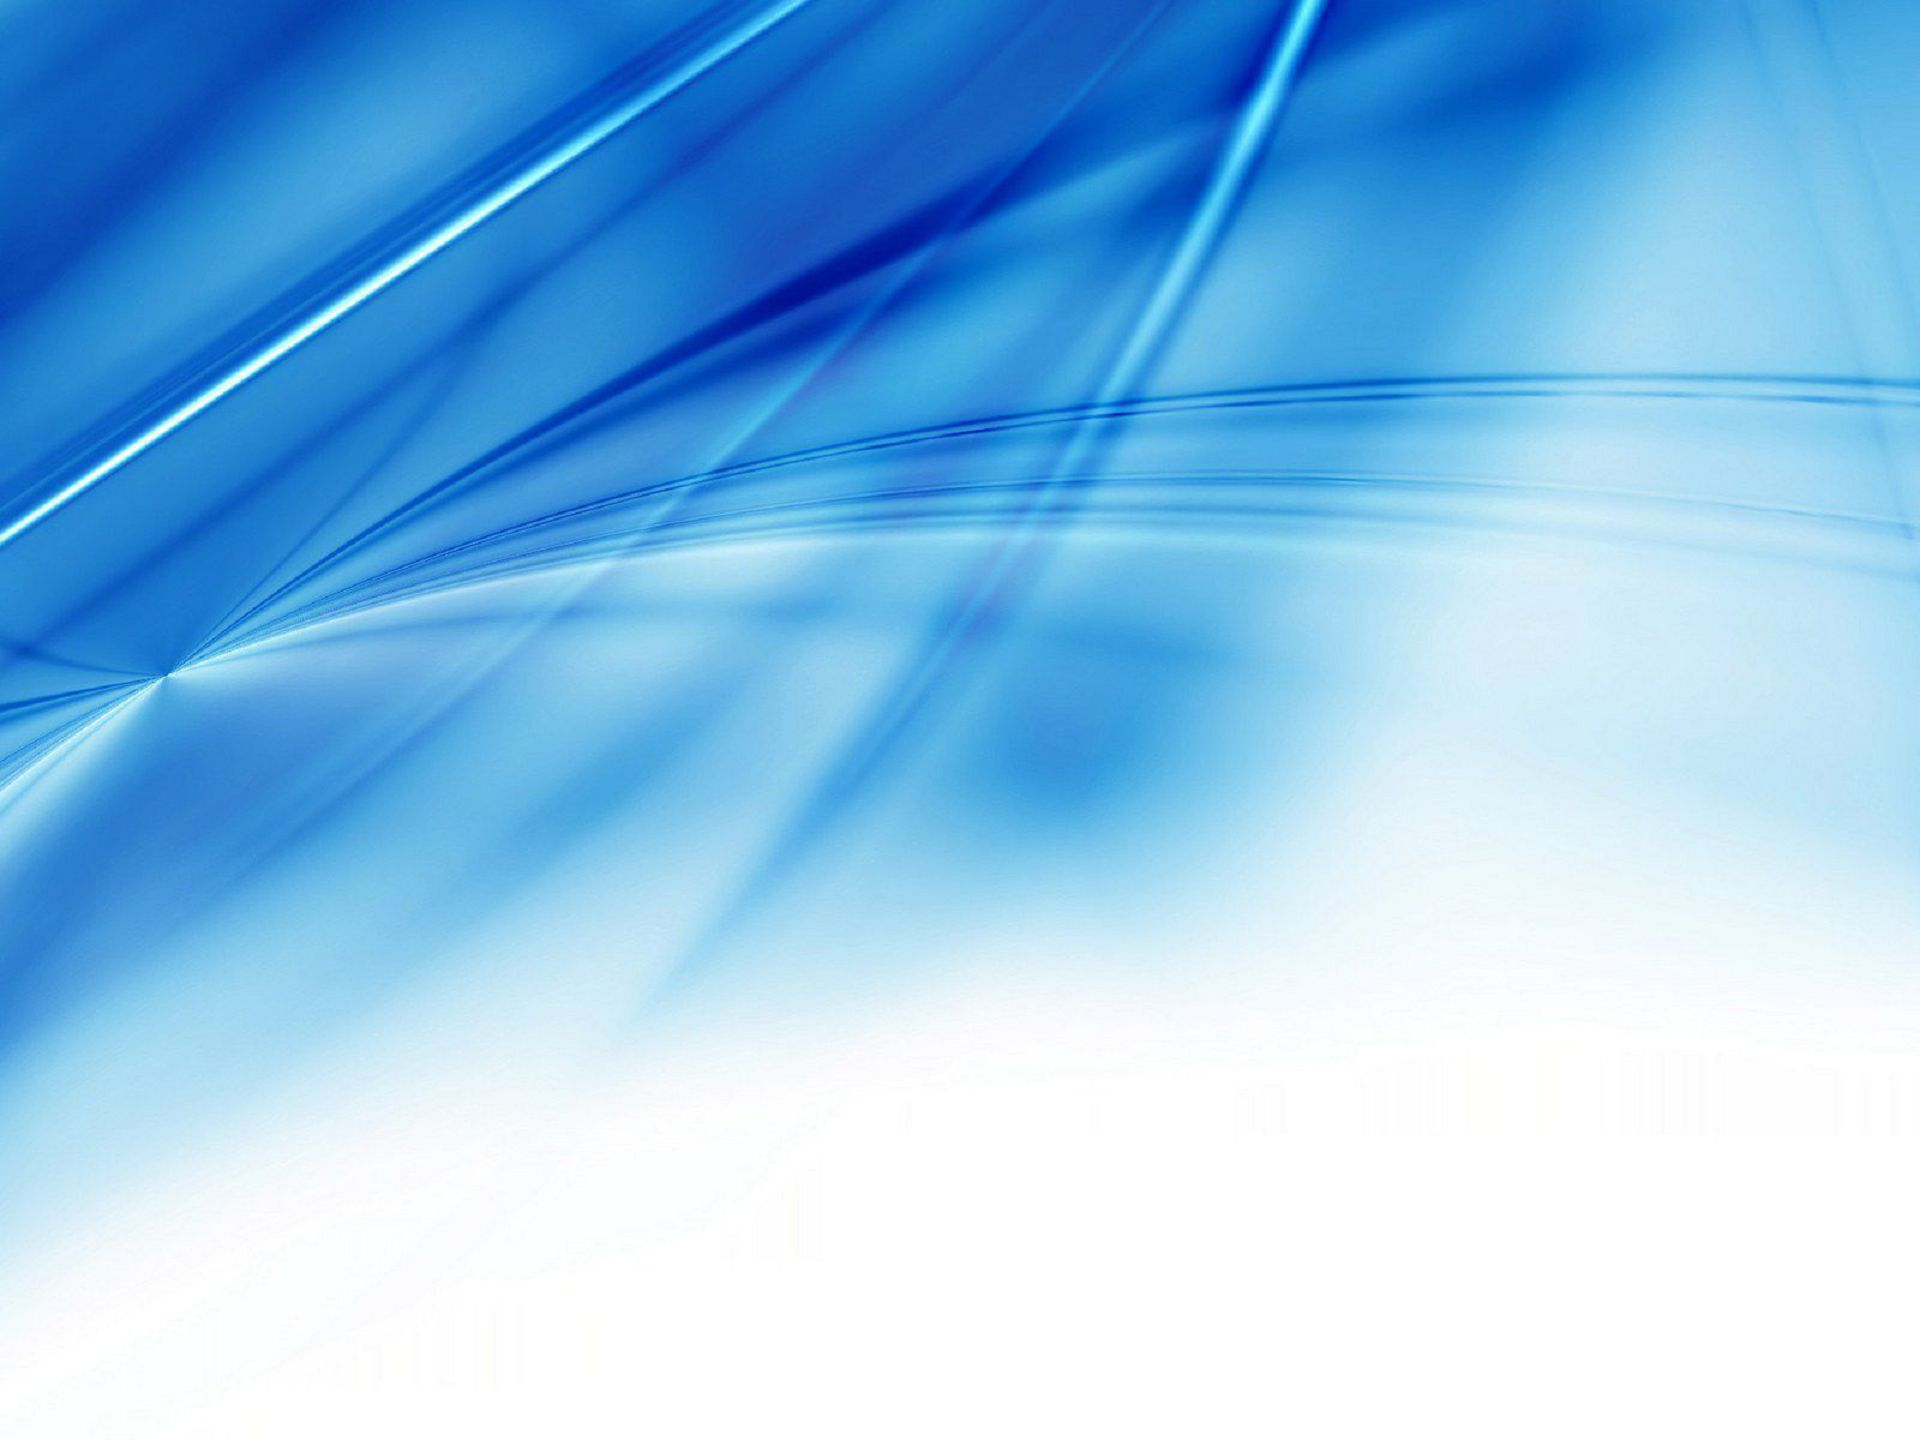 Blue Abstract For Desktop